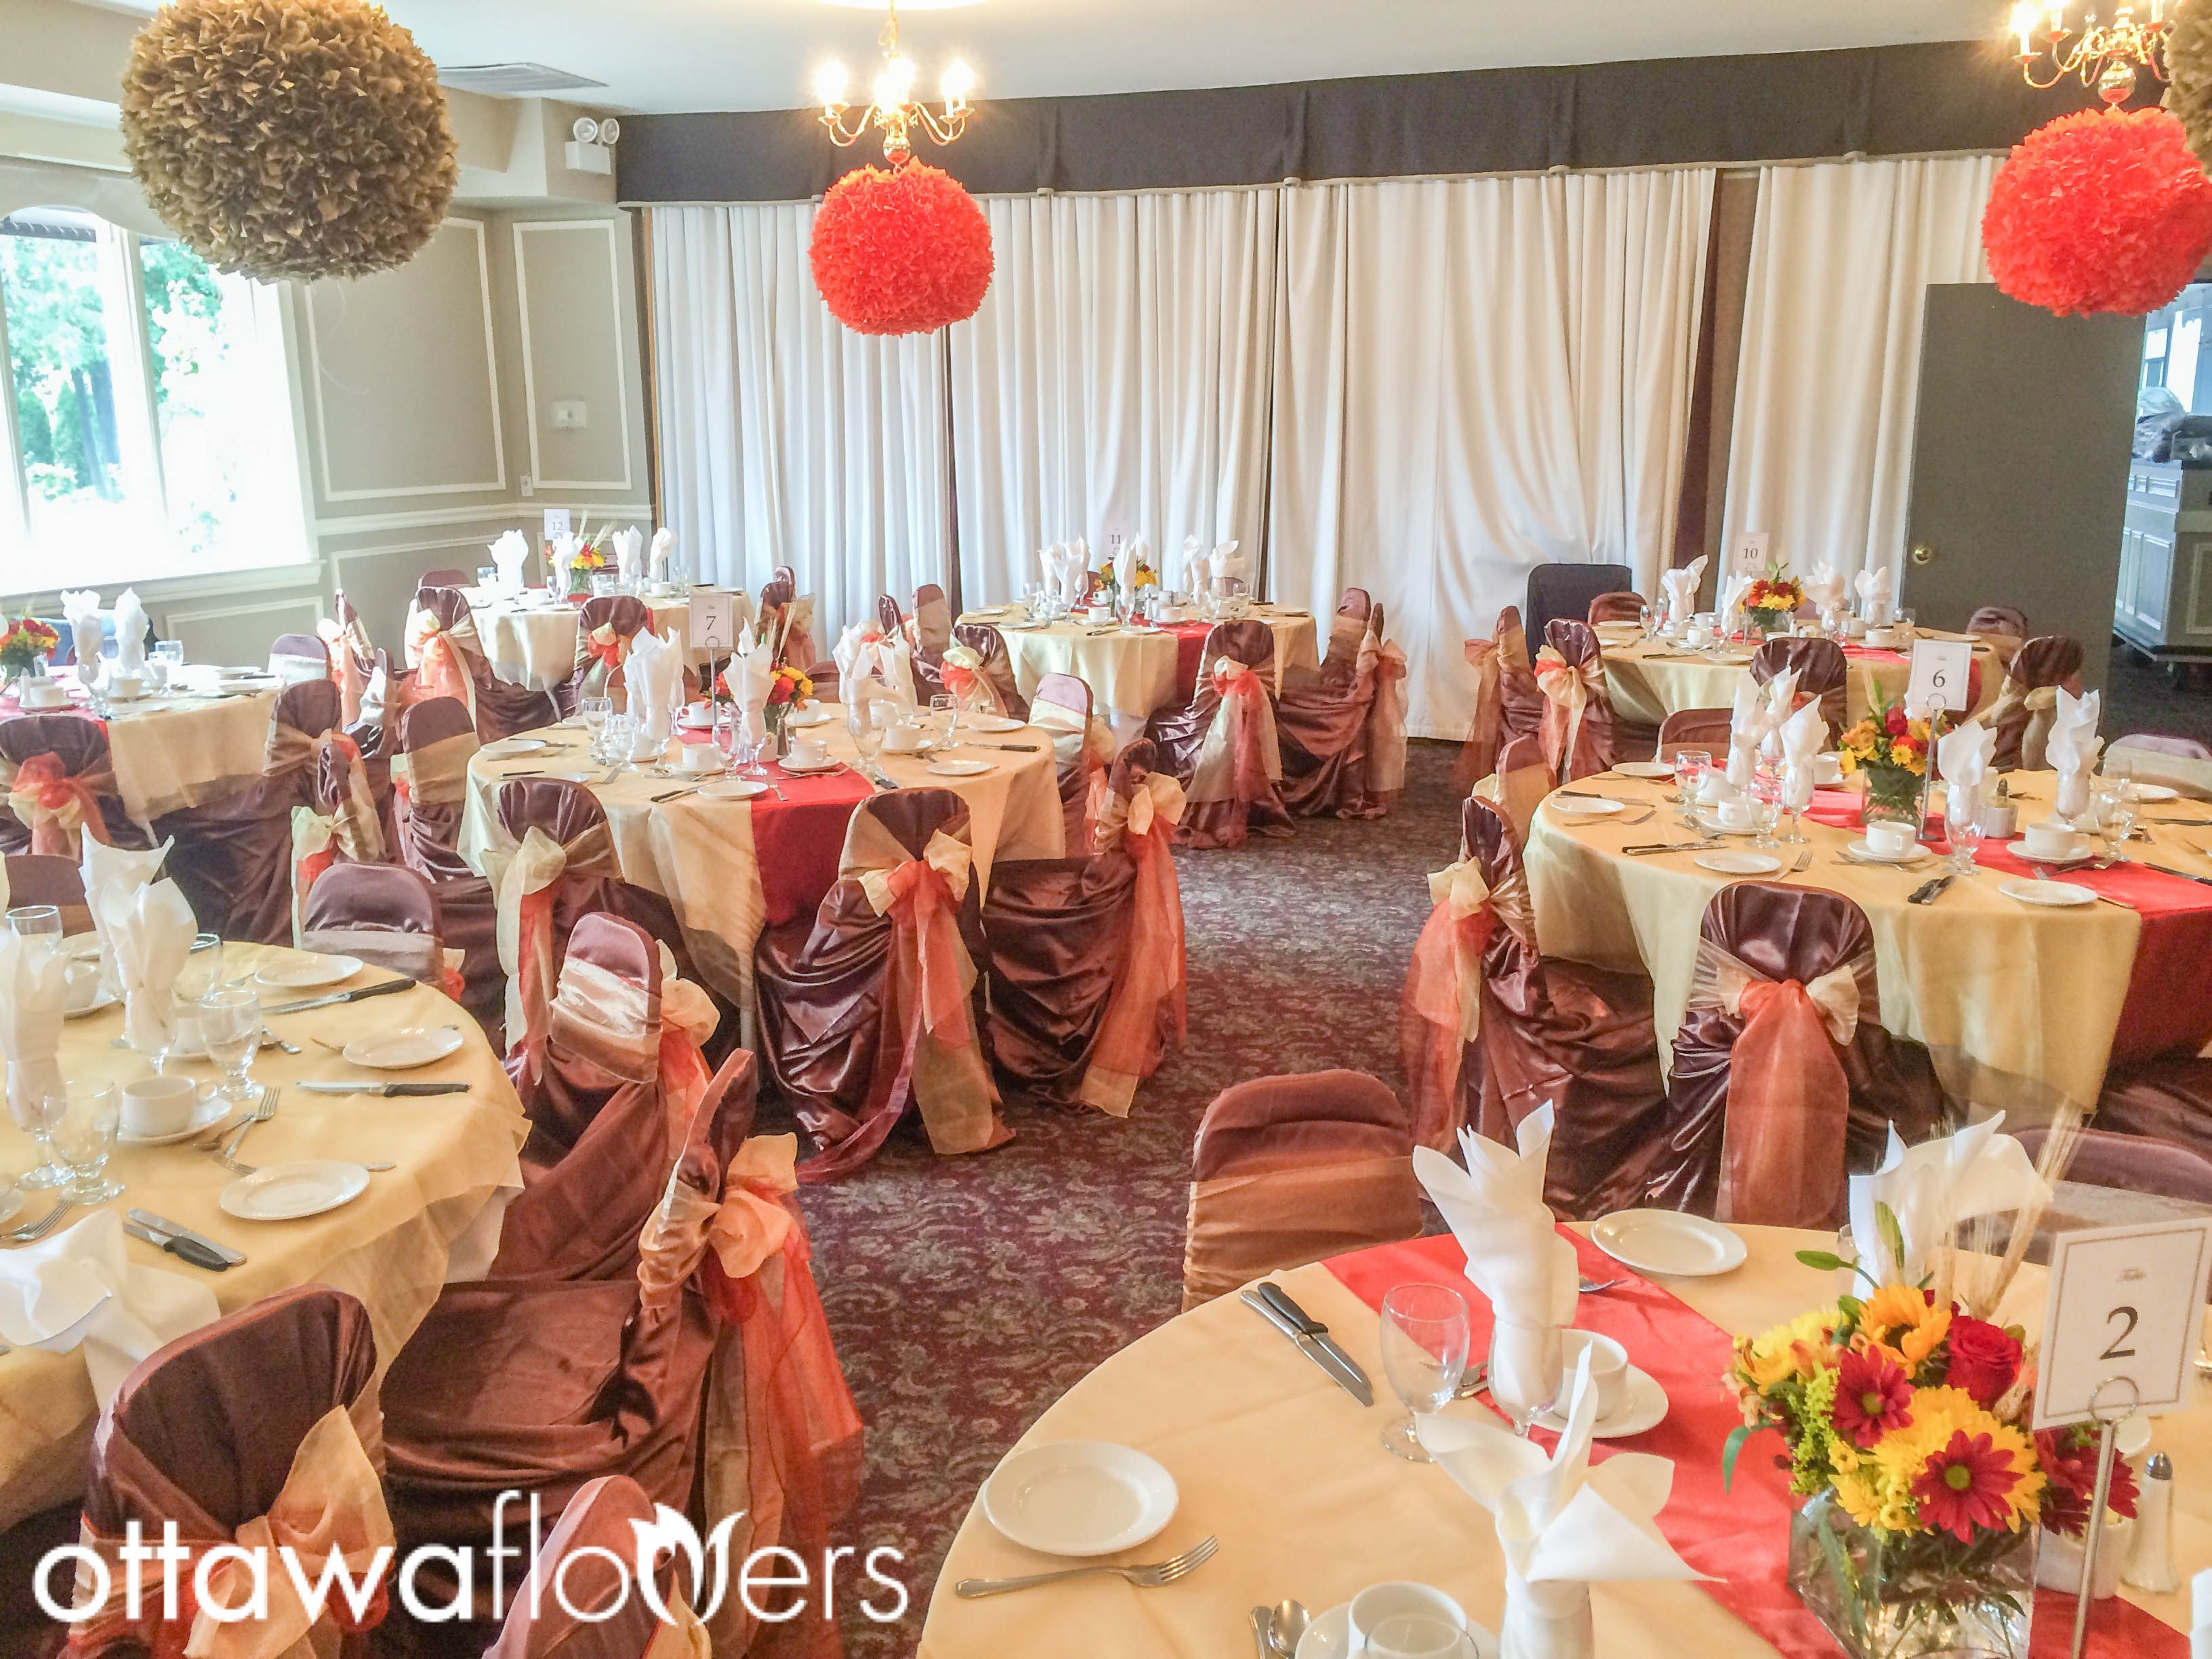 Wedding decor images  Ottawa flowers Wedding Decor Wedding Reception ottawa wedding